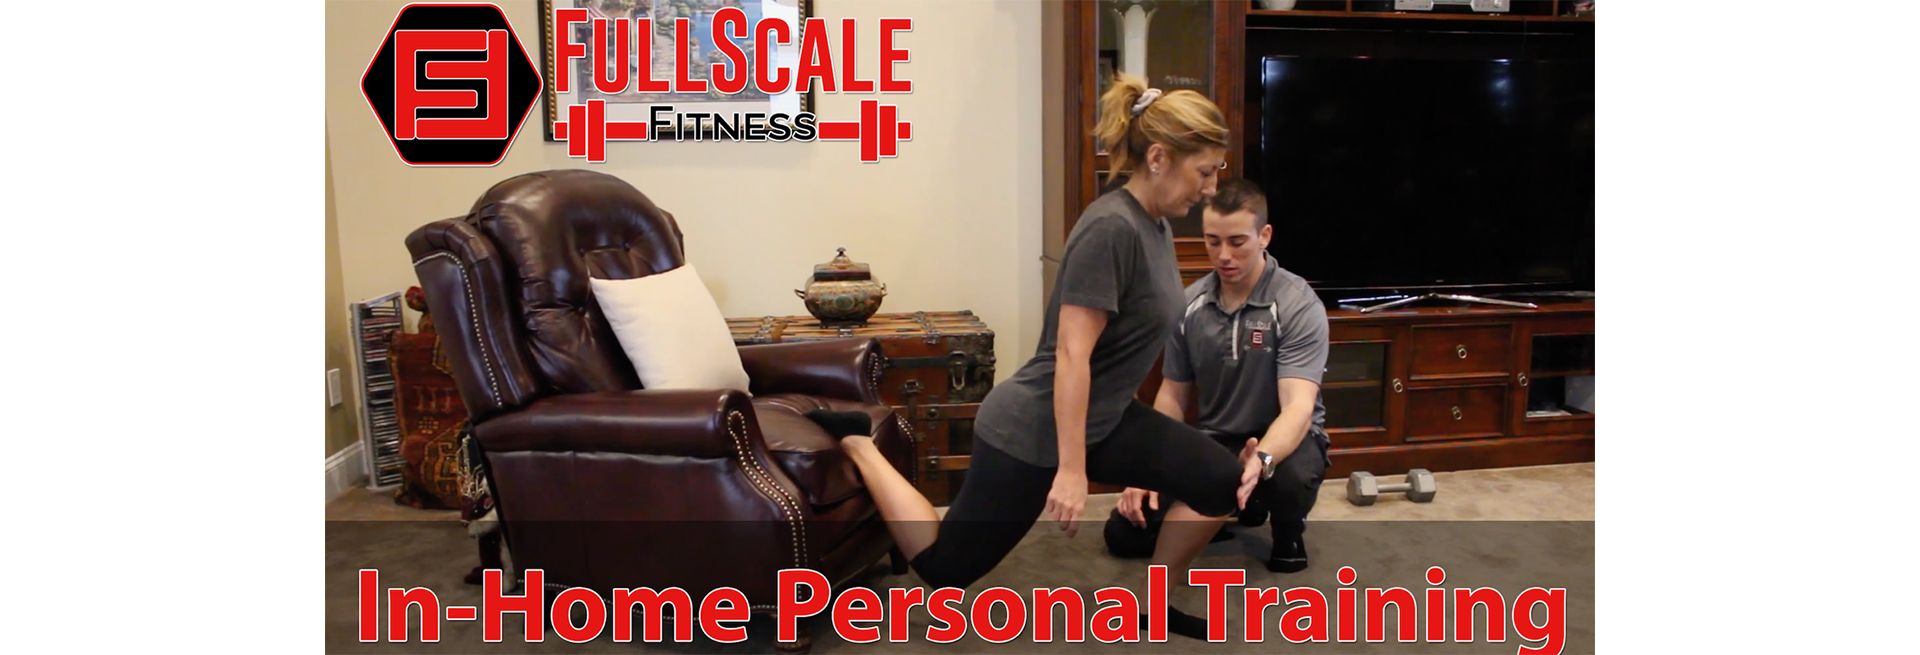 Copy-of-In-Home-Personal-Training-Akron-Full-Scale-Fitness-Trainers-Thumbnail